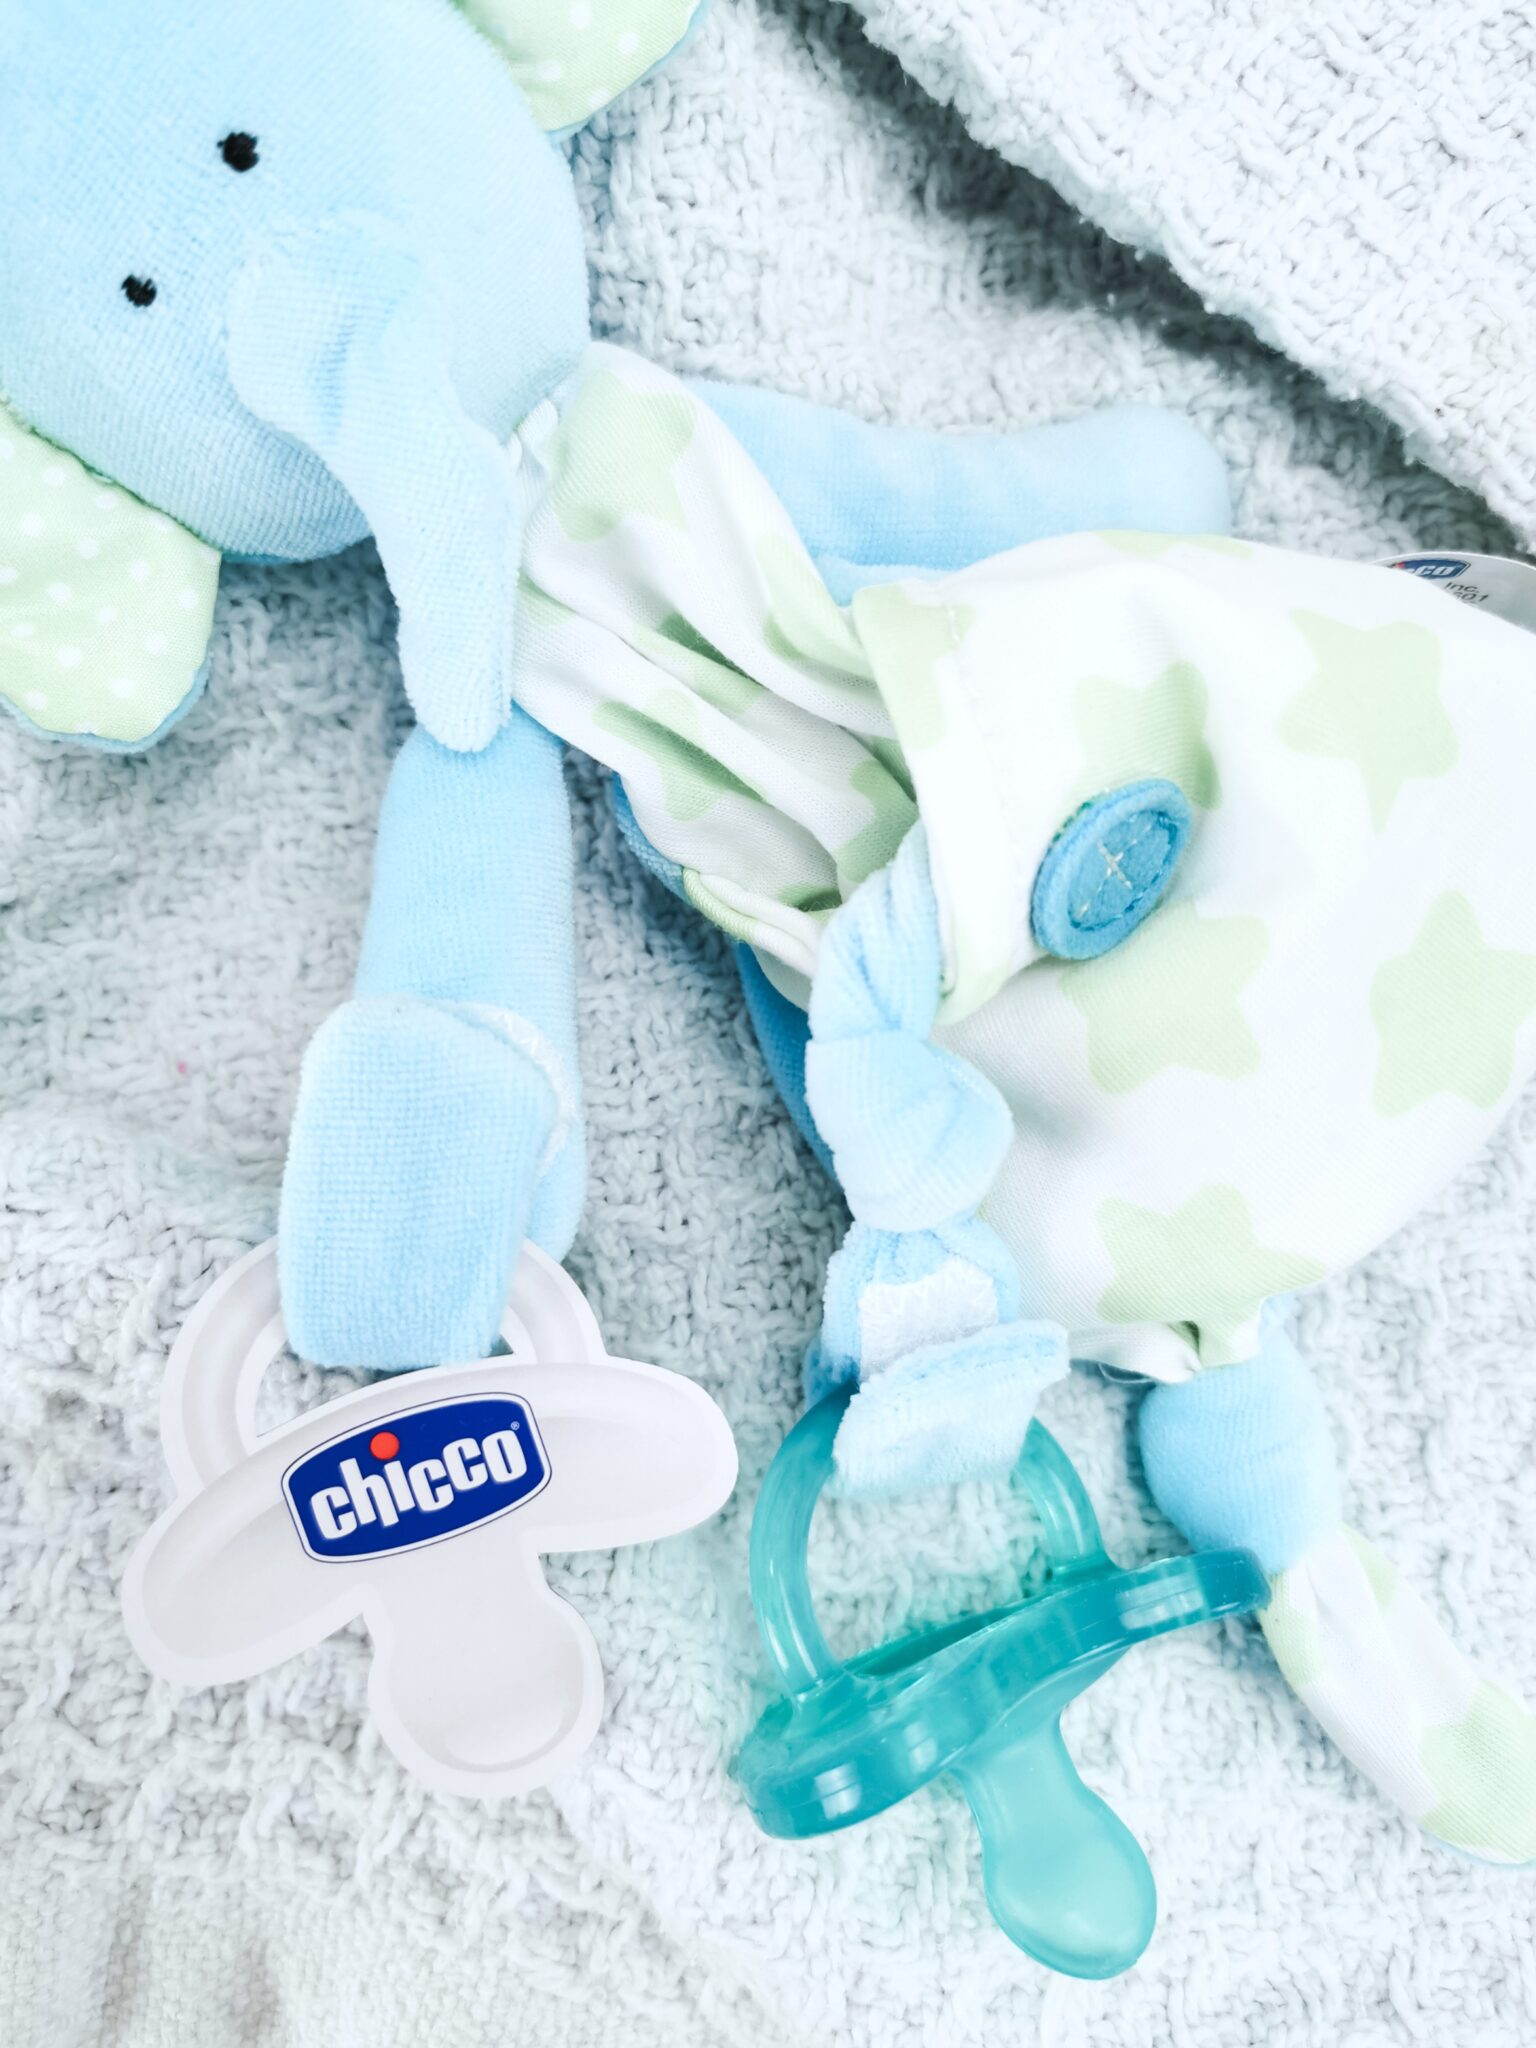 A blue blanket with a cute little teddy that holds the Chicco pacifier.